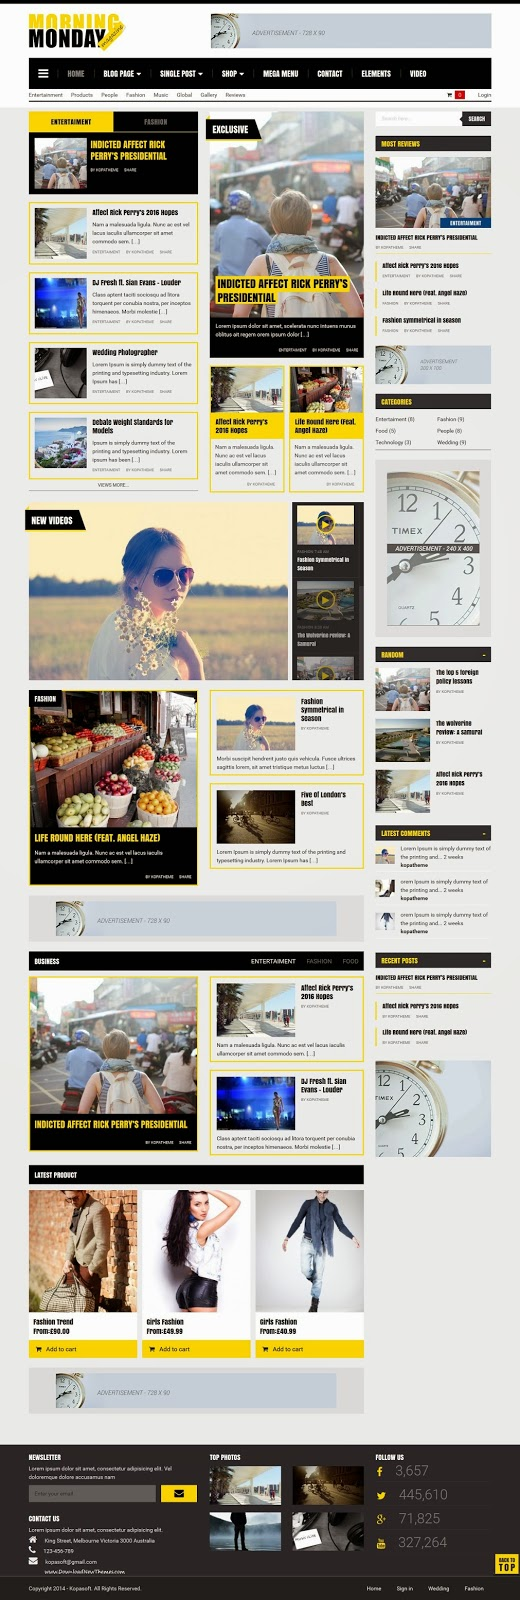 Monday Morning Magazine WordPress Theme